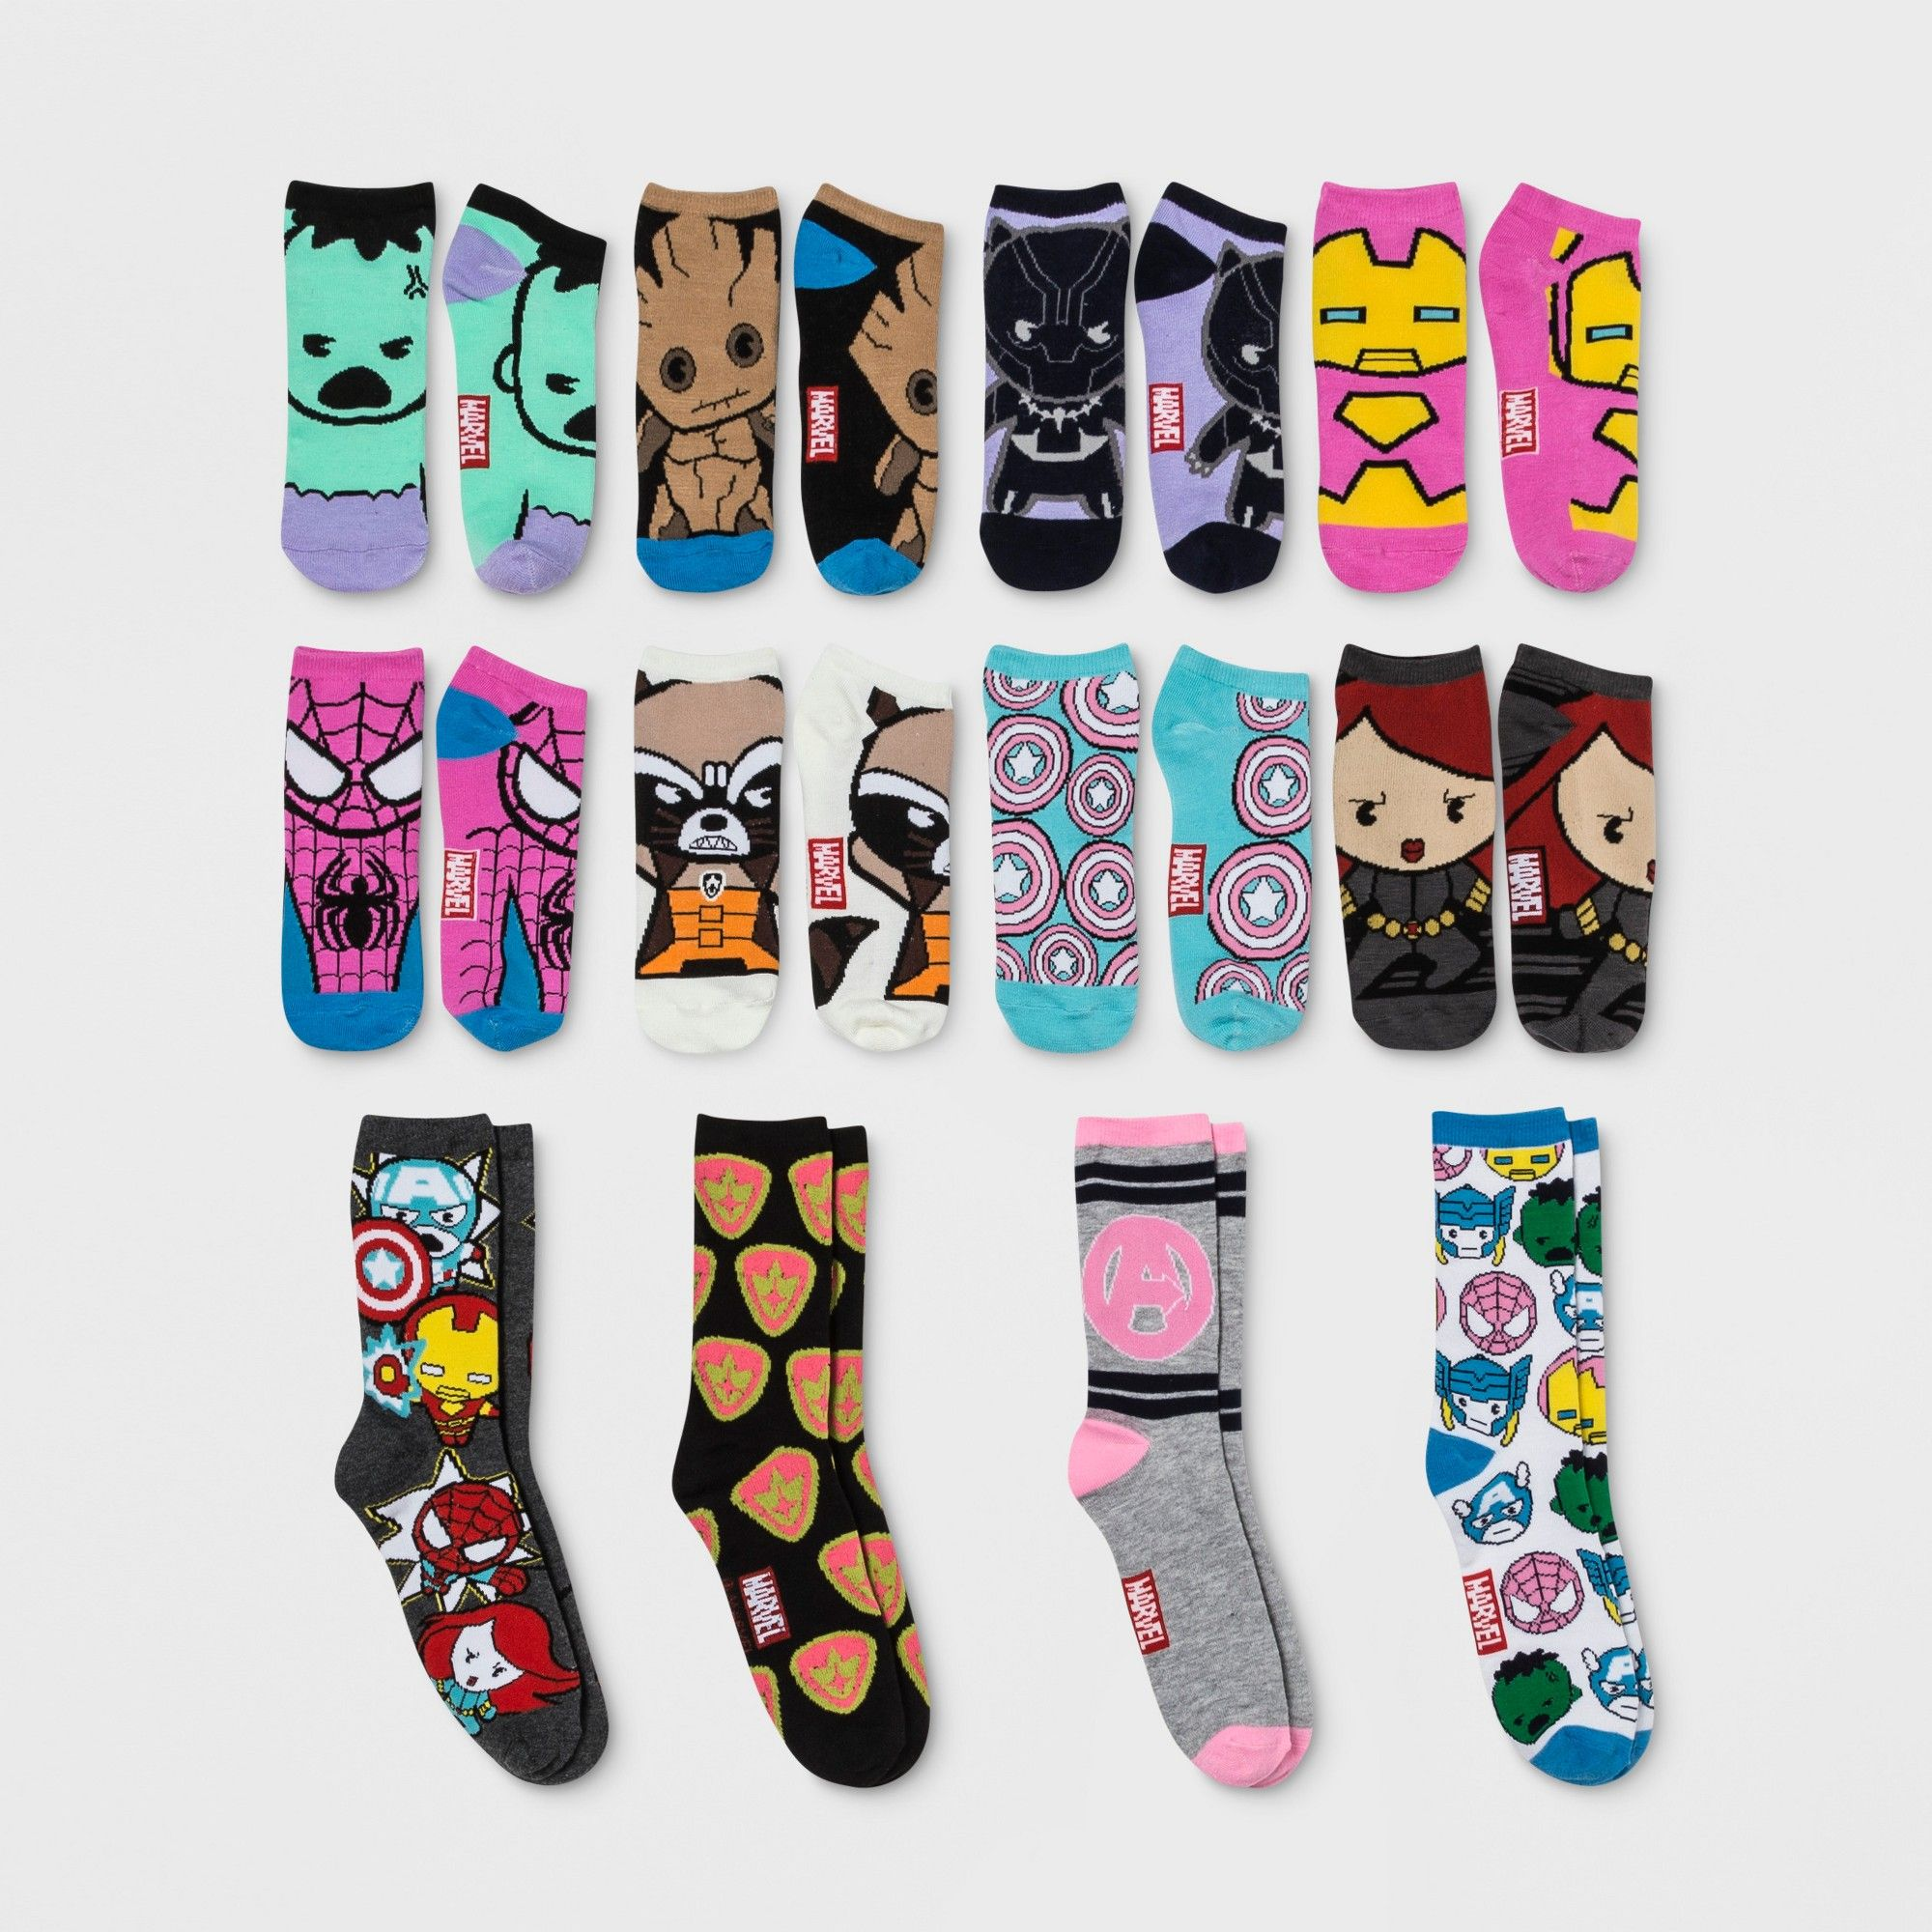 c22896053cf40 Women's Marvel 12 Days of Socks - Colors May Vary 4-10, Multi-Colored